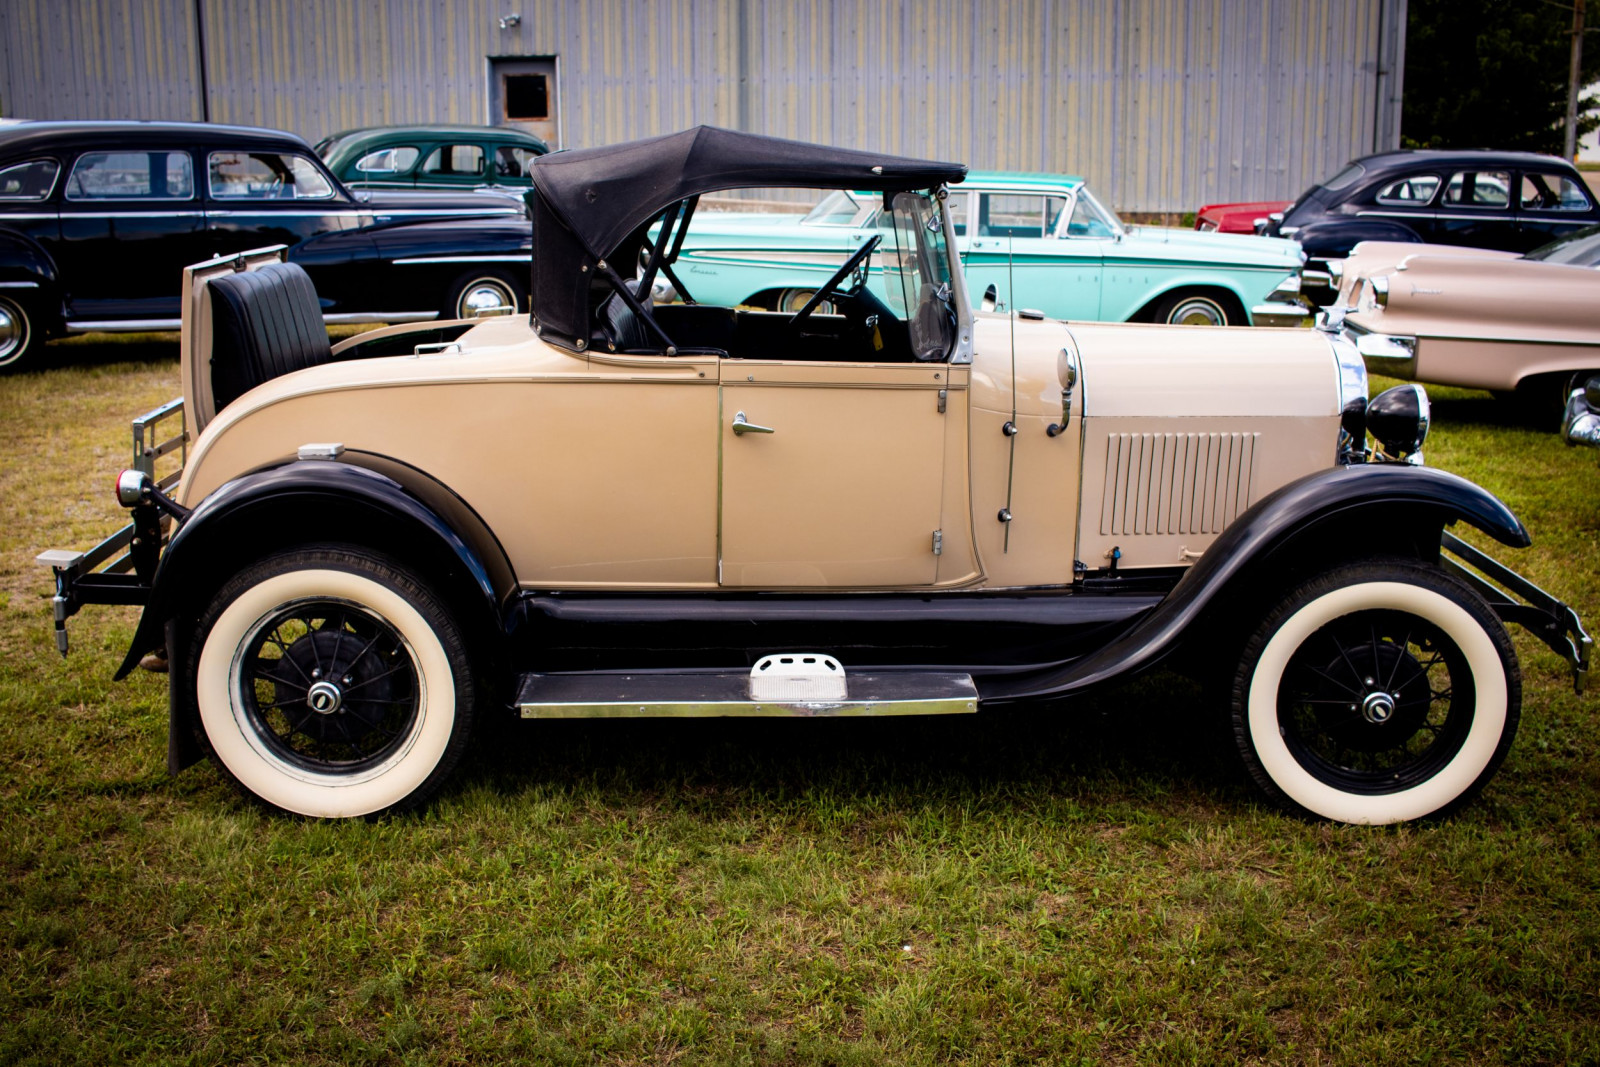 1980 Shay Model A Roadster - Image 12